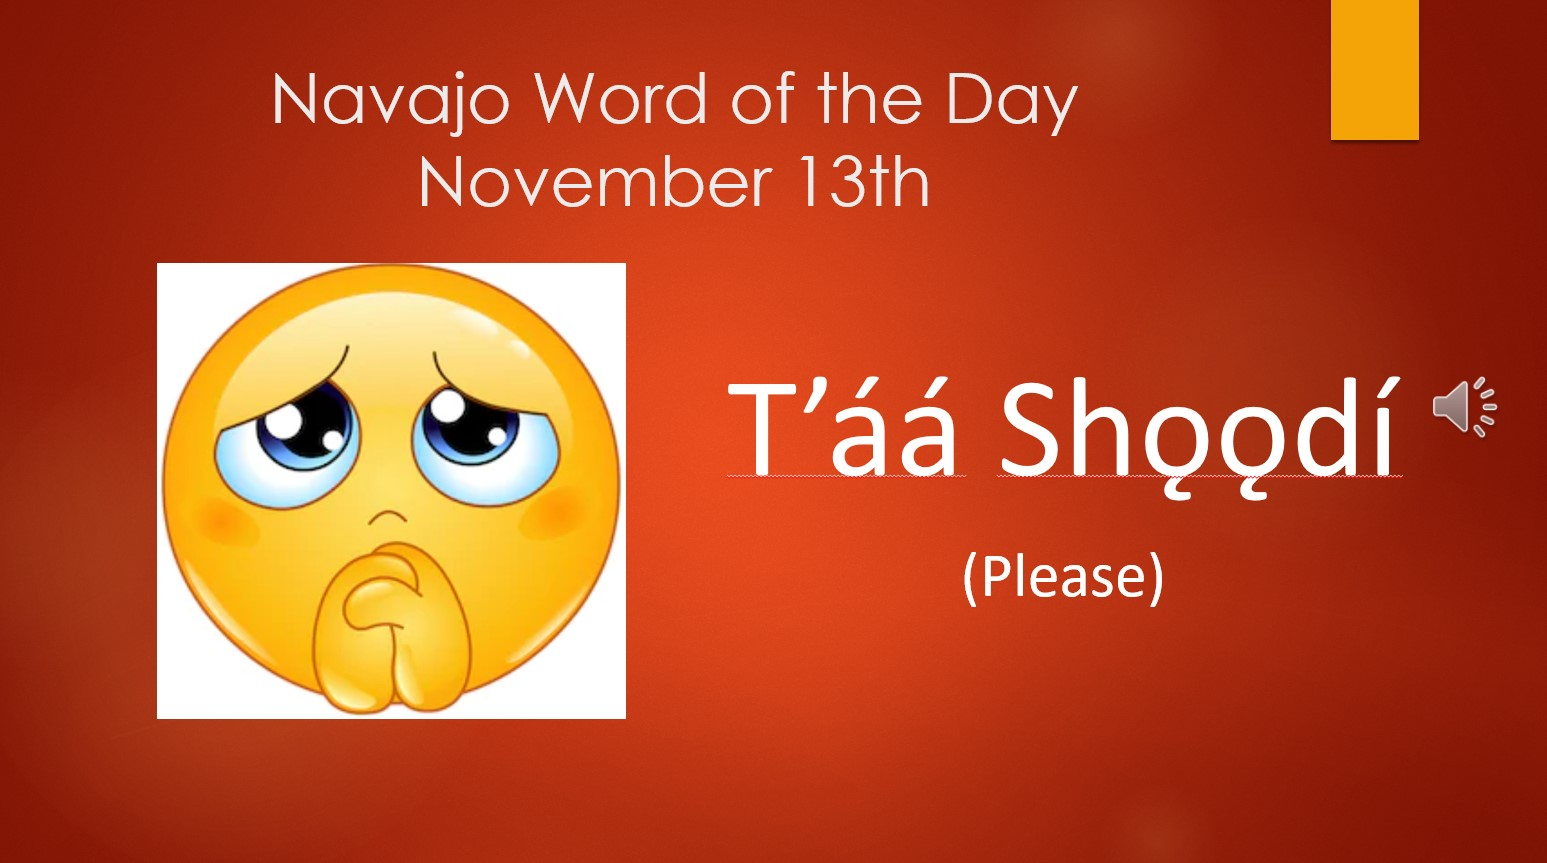 Graphic for Navajo Word of the Day